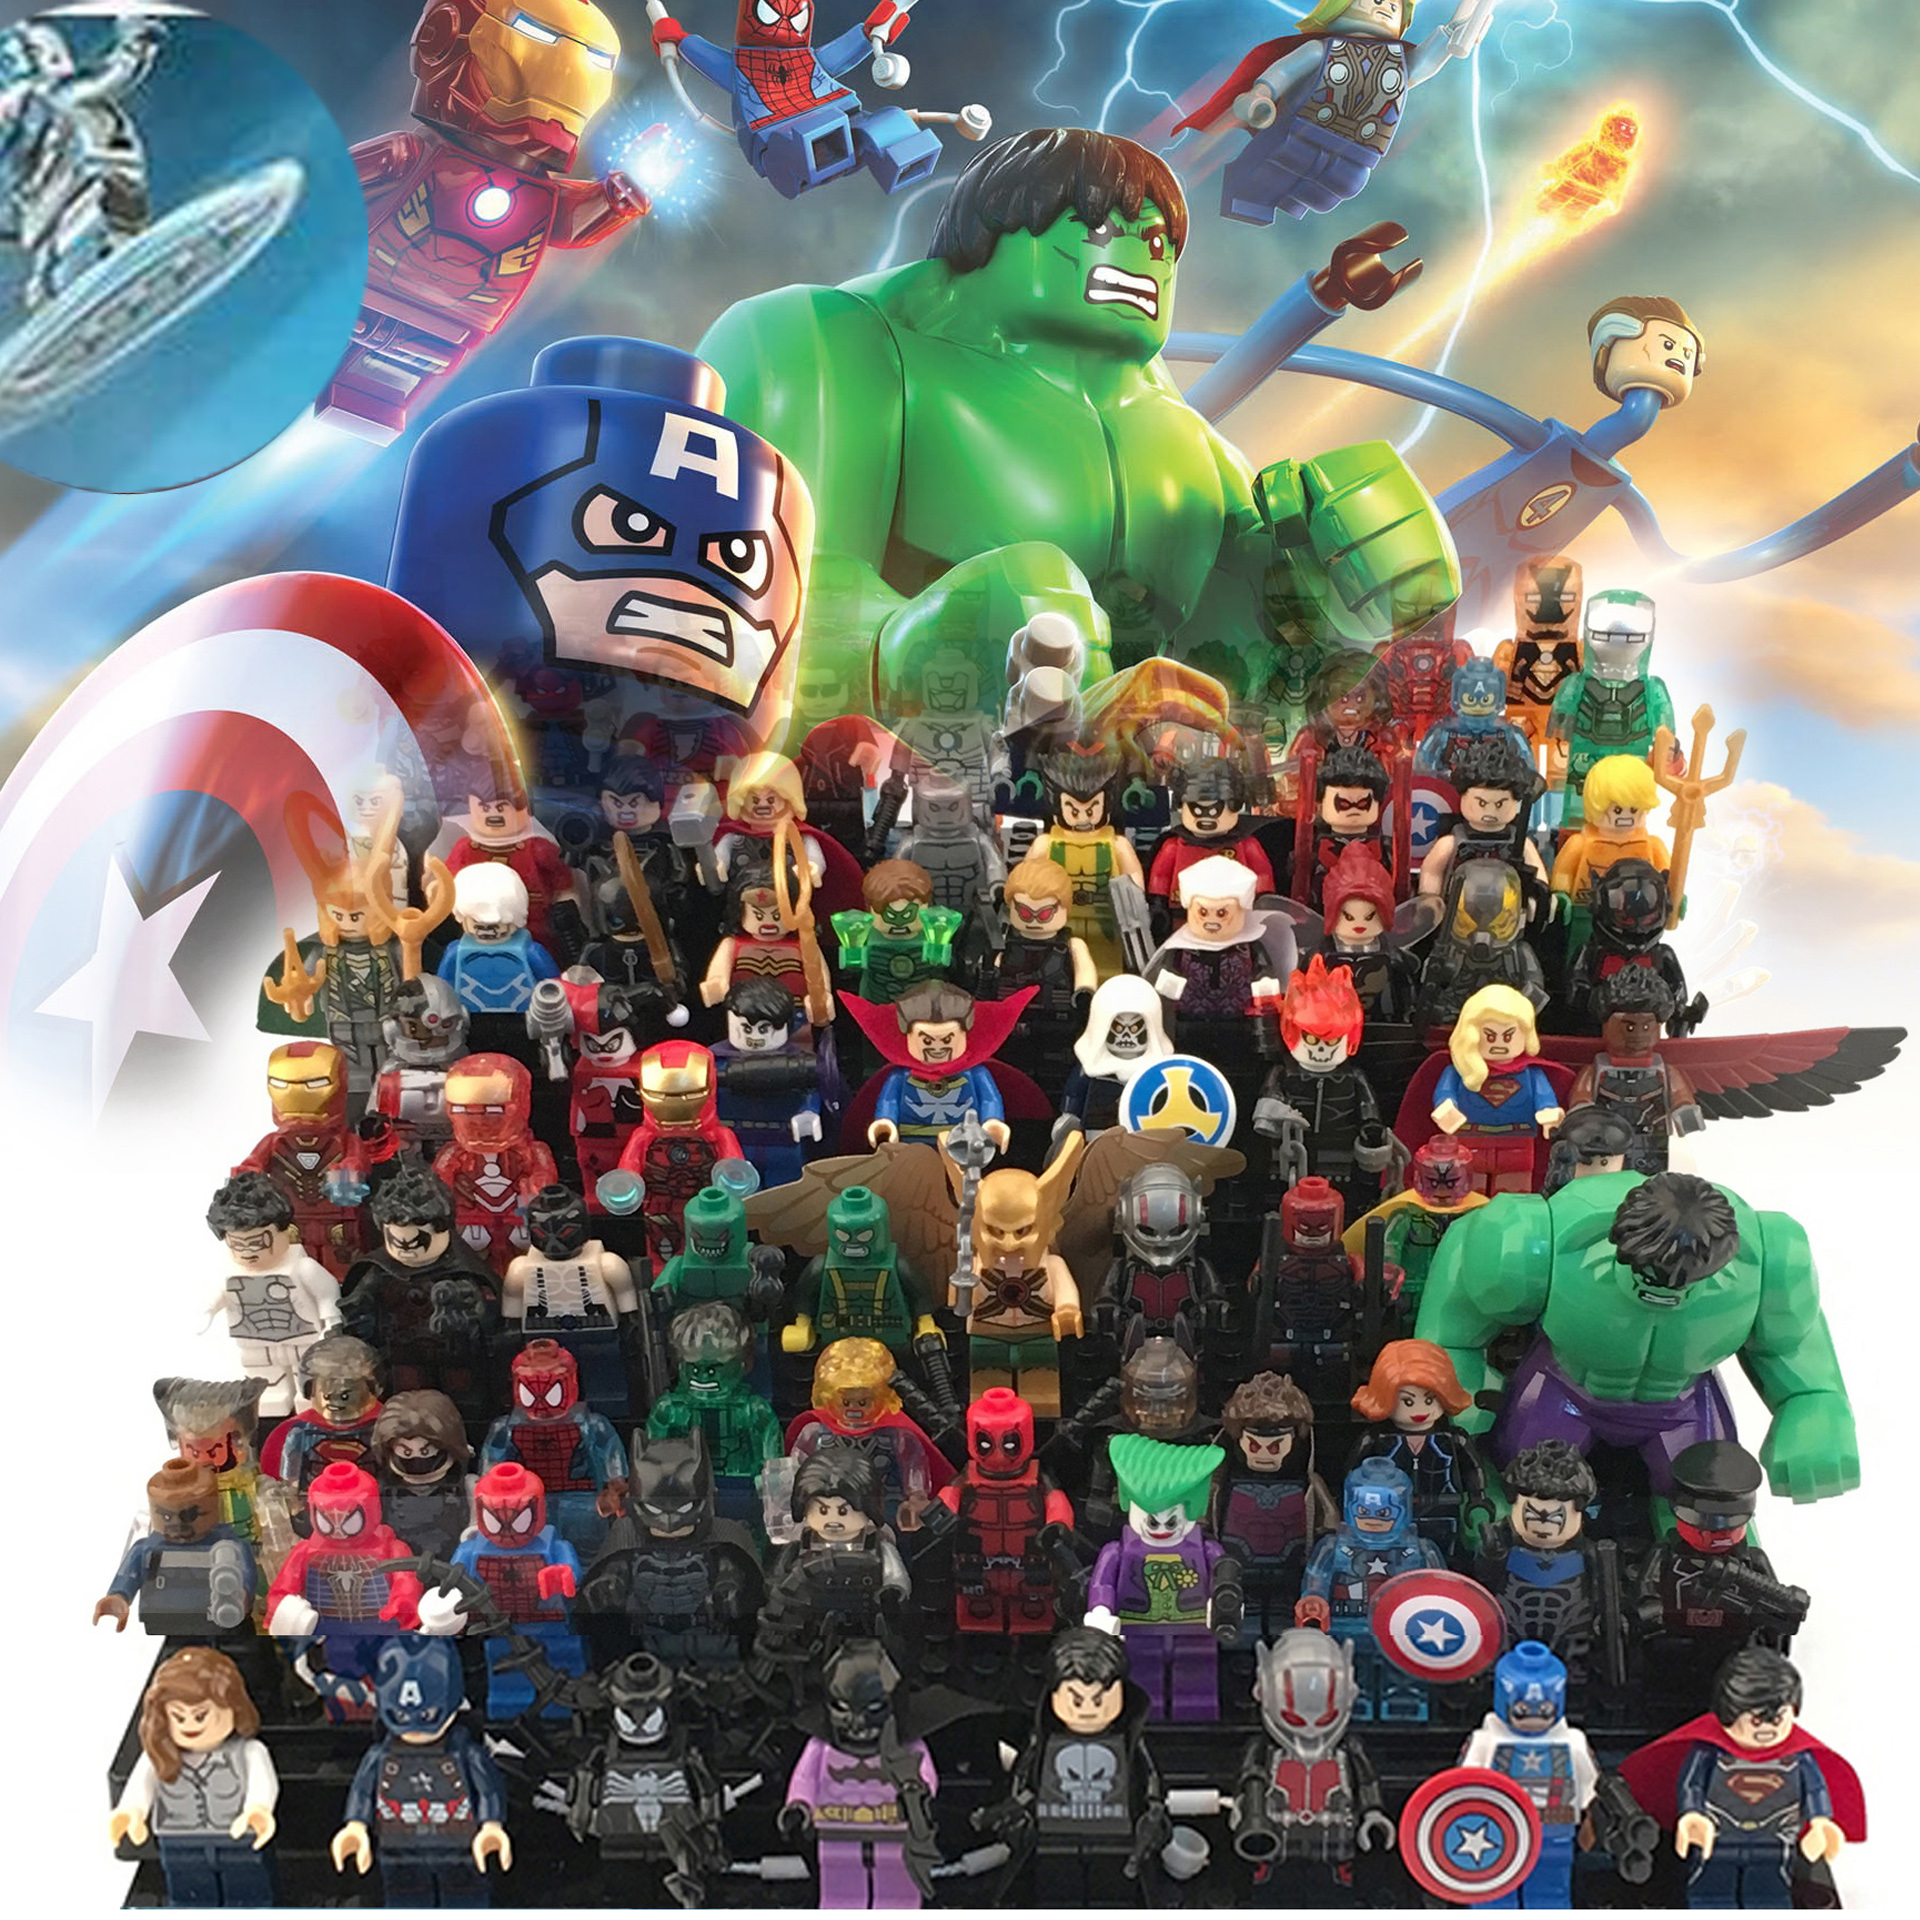 Super Heroes Avengers Building Blocks Hulk Iron Man Batman Spiderman Bricks Legoeings Minifigured Toys For Children Gift Dolls